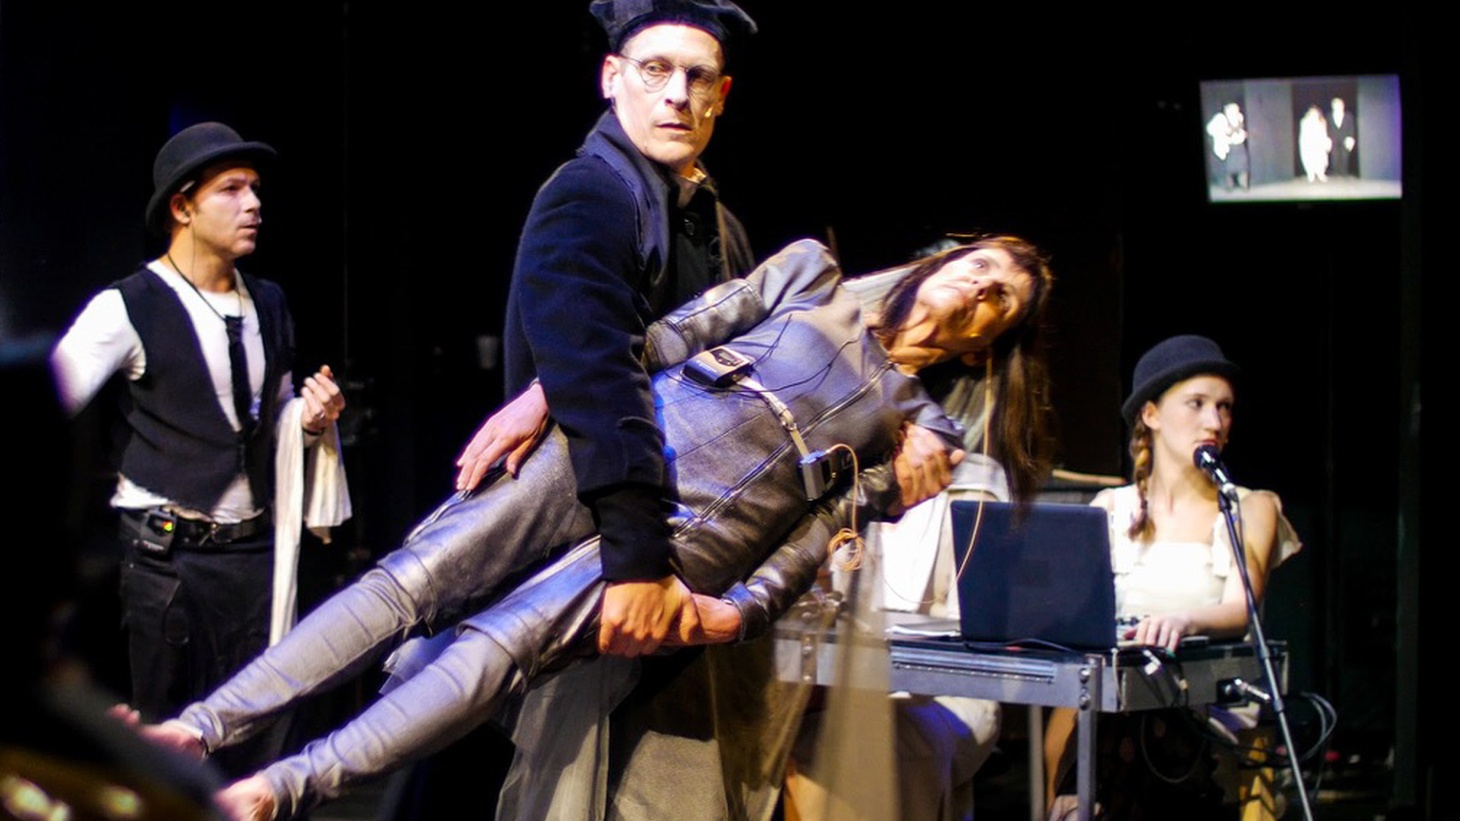 """Watching the Wooster Group's latest piece at REDCAT """"A PINK CHAIR(In Place of a Fake Antique),"""" had me thinking about a quote from Shakespeare and a dumb joke."""